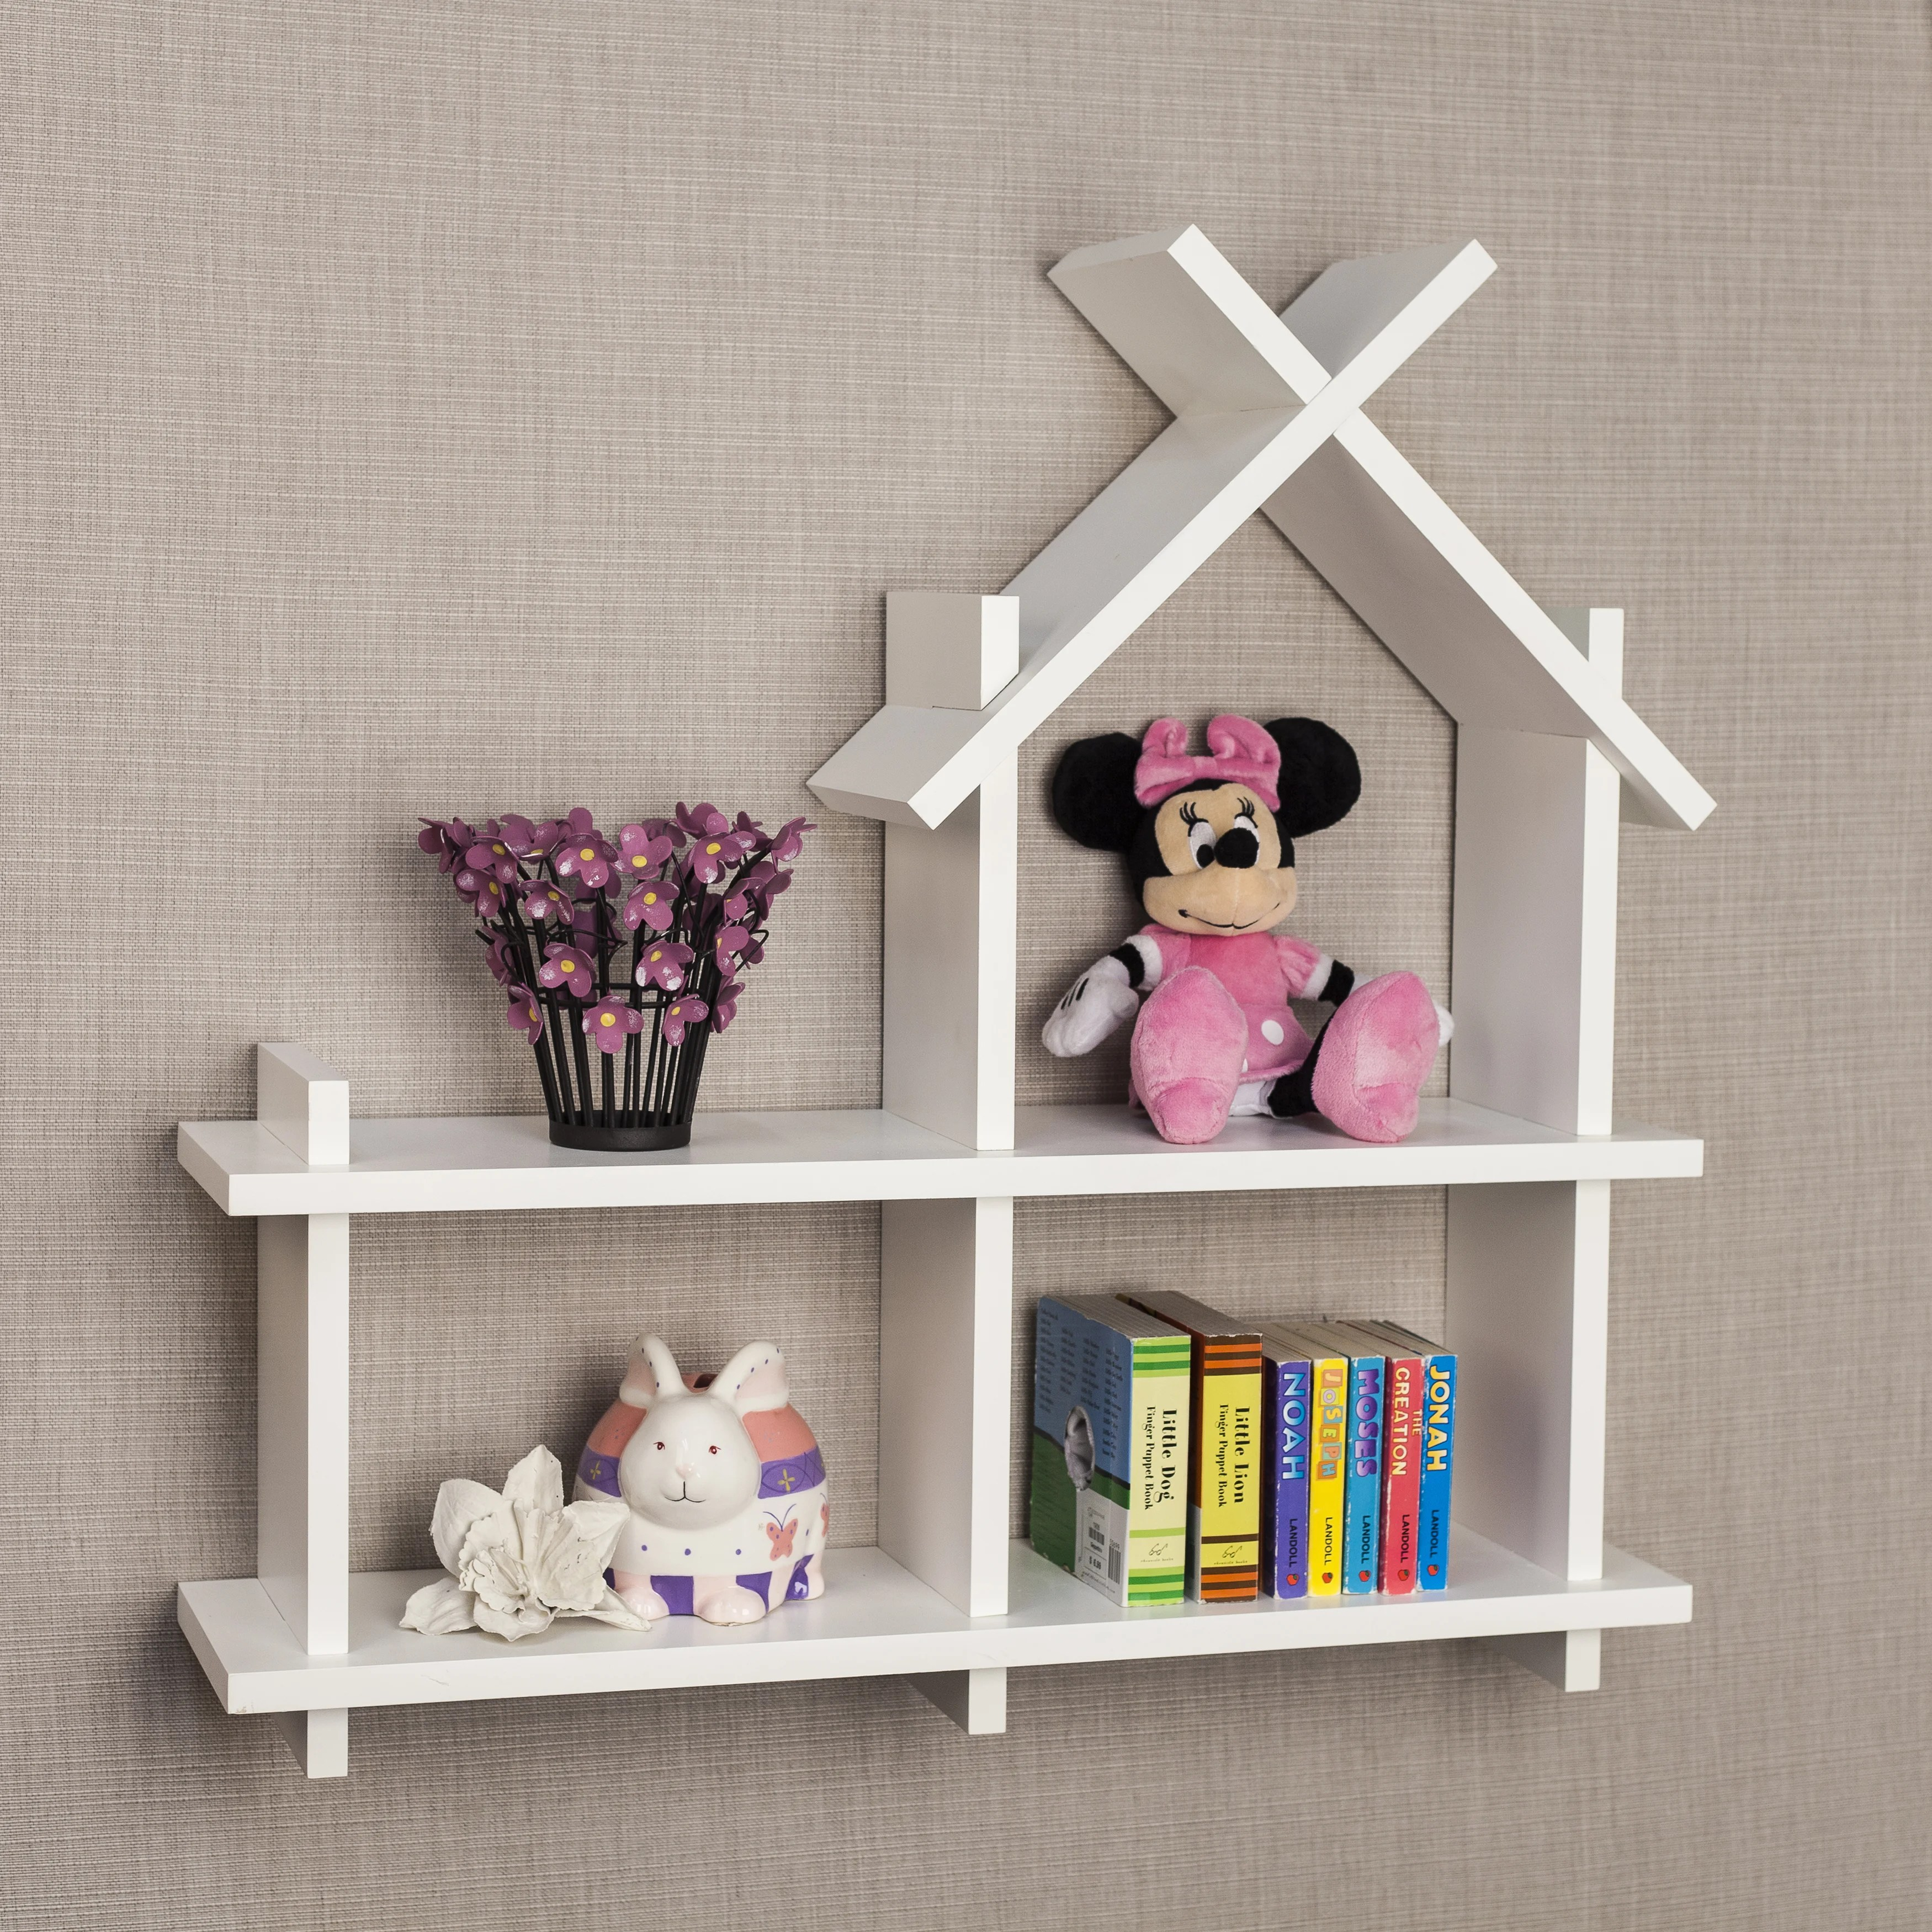 Wall Shelf Design Danya B House Design White Wall Shelf